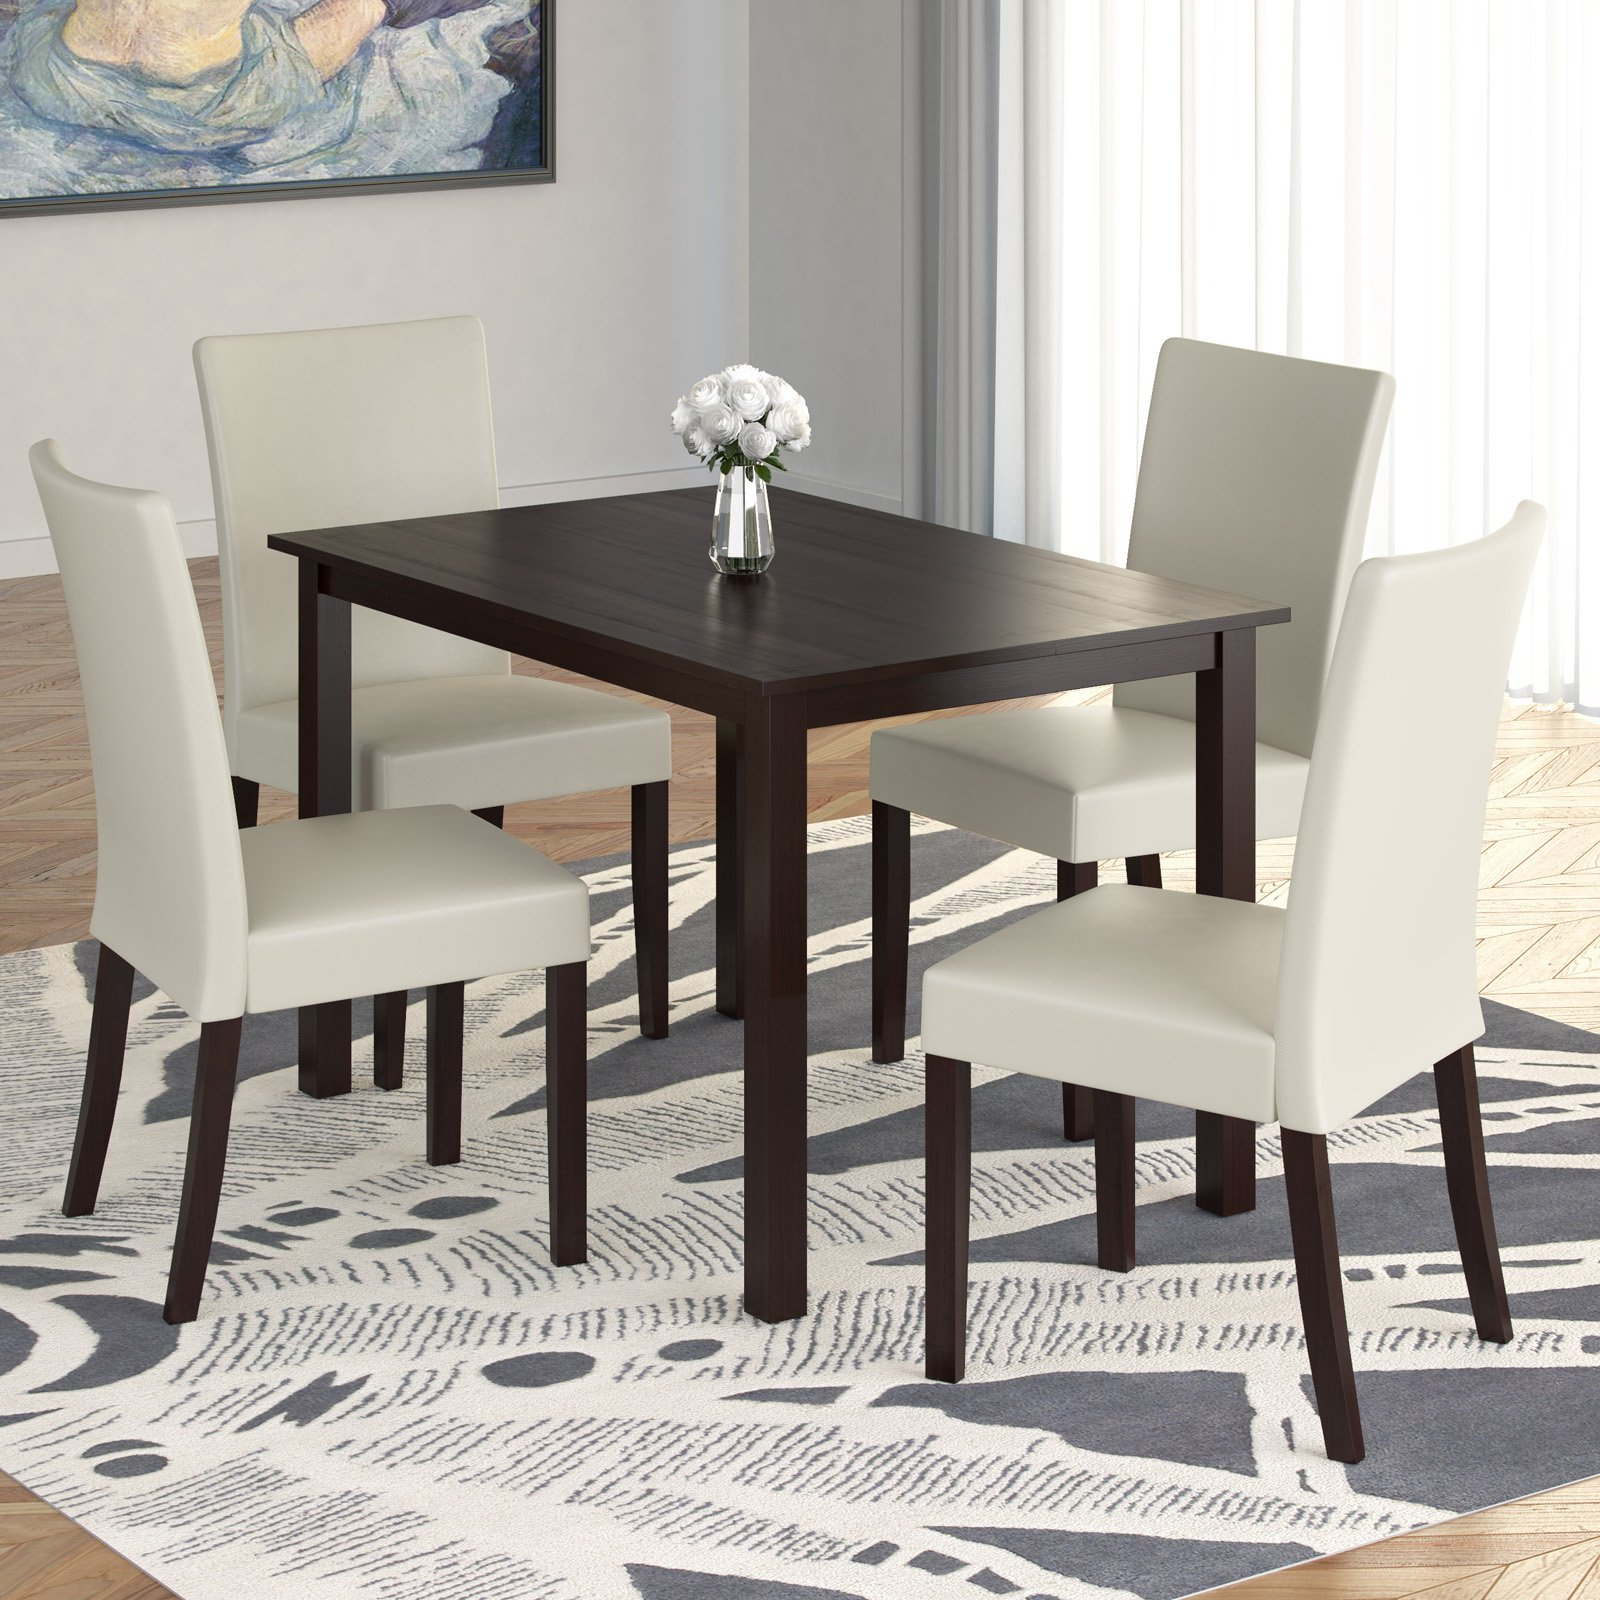 Atwood 5-Piece Dining Set with Cream Leatherette Seats